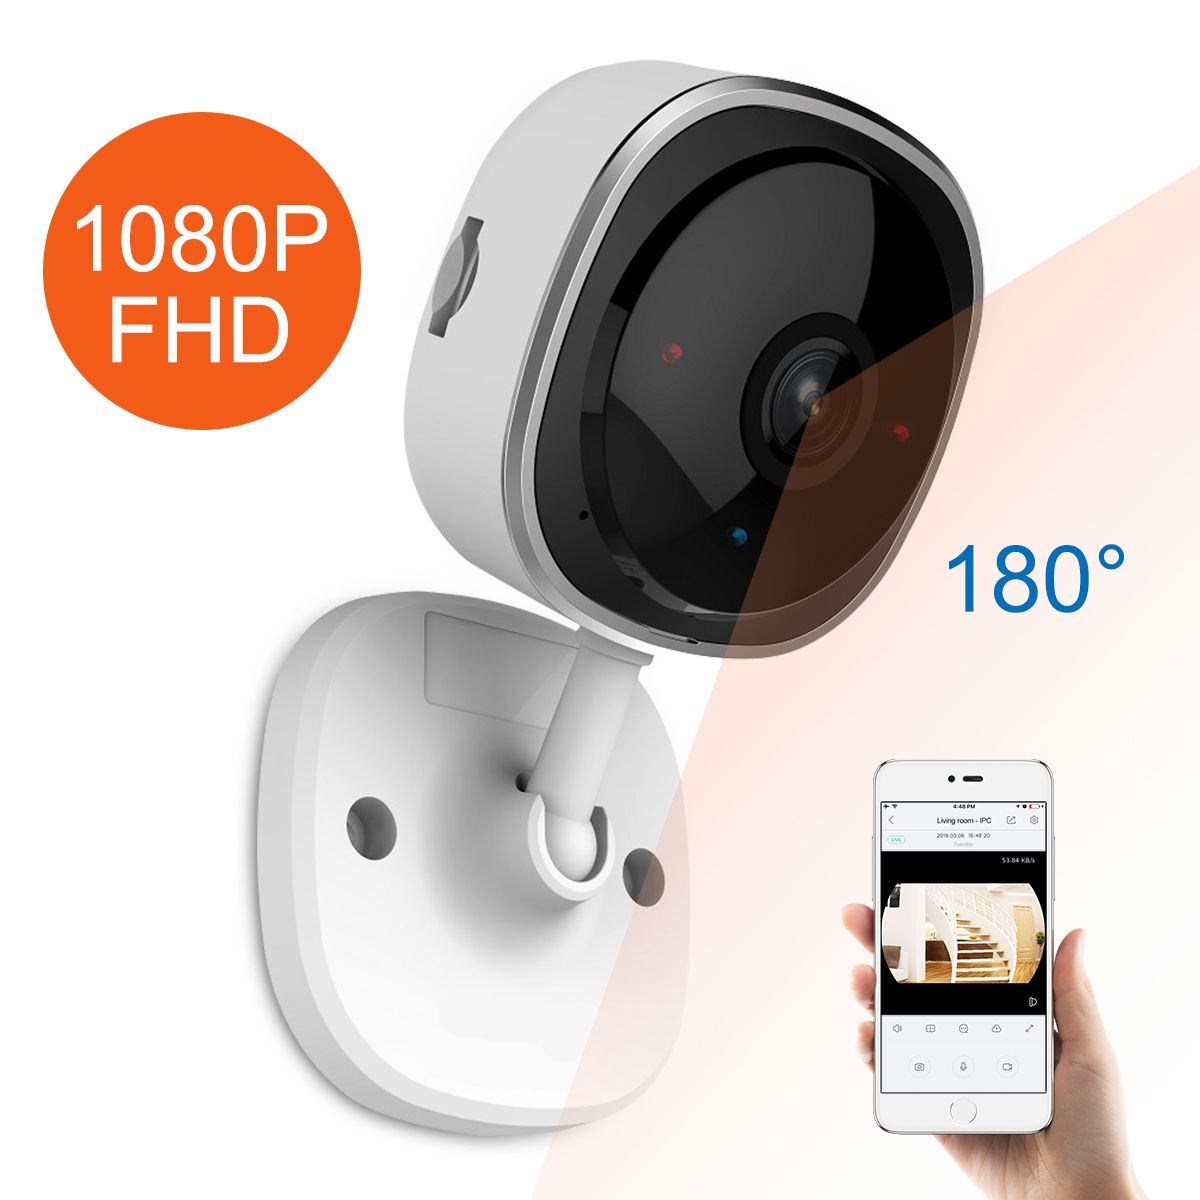 SANNCE HD 1080P Fisheye IP Camera Wireless Wifi Mini Network Camara Night Vision IR Cut Home Security Camara Wi-Fi Baby Monitor